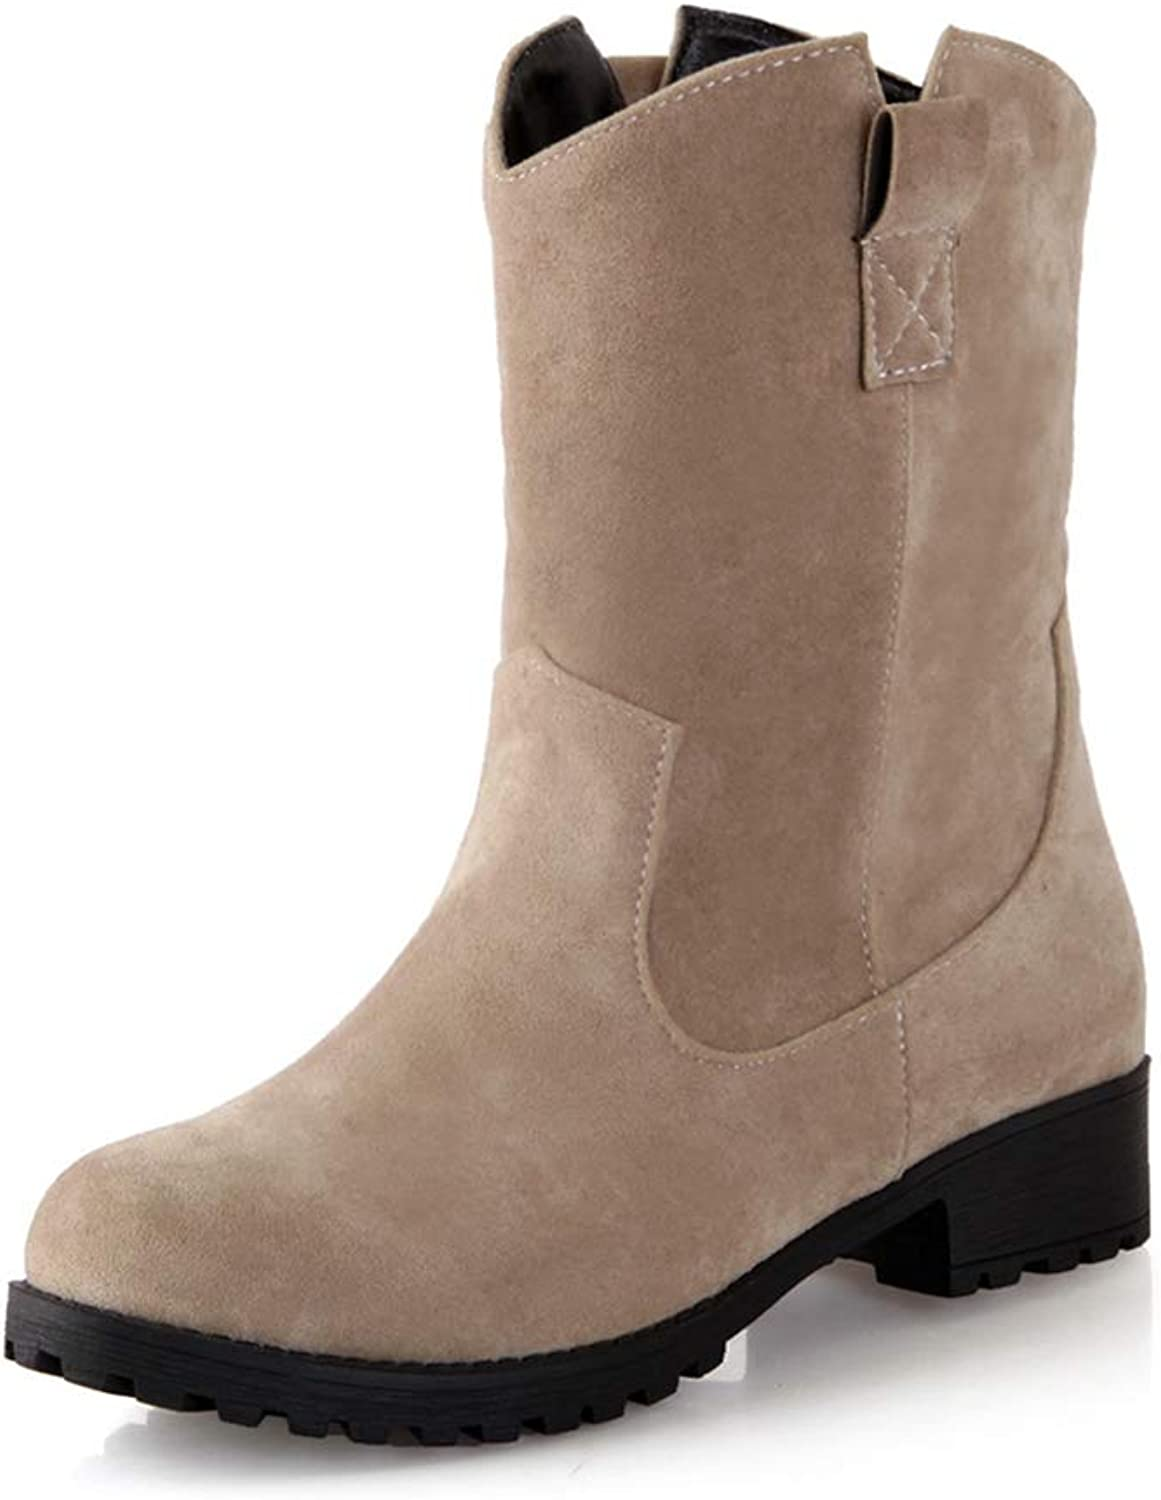 Women's Mid Calf Boots Women Warm Suede Comfort Casual shoes Antiskid Low Heels Female Snow Boot